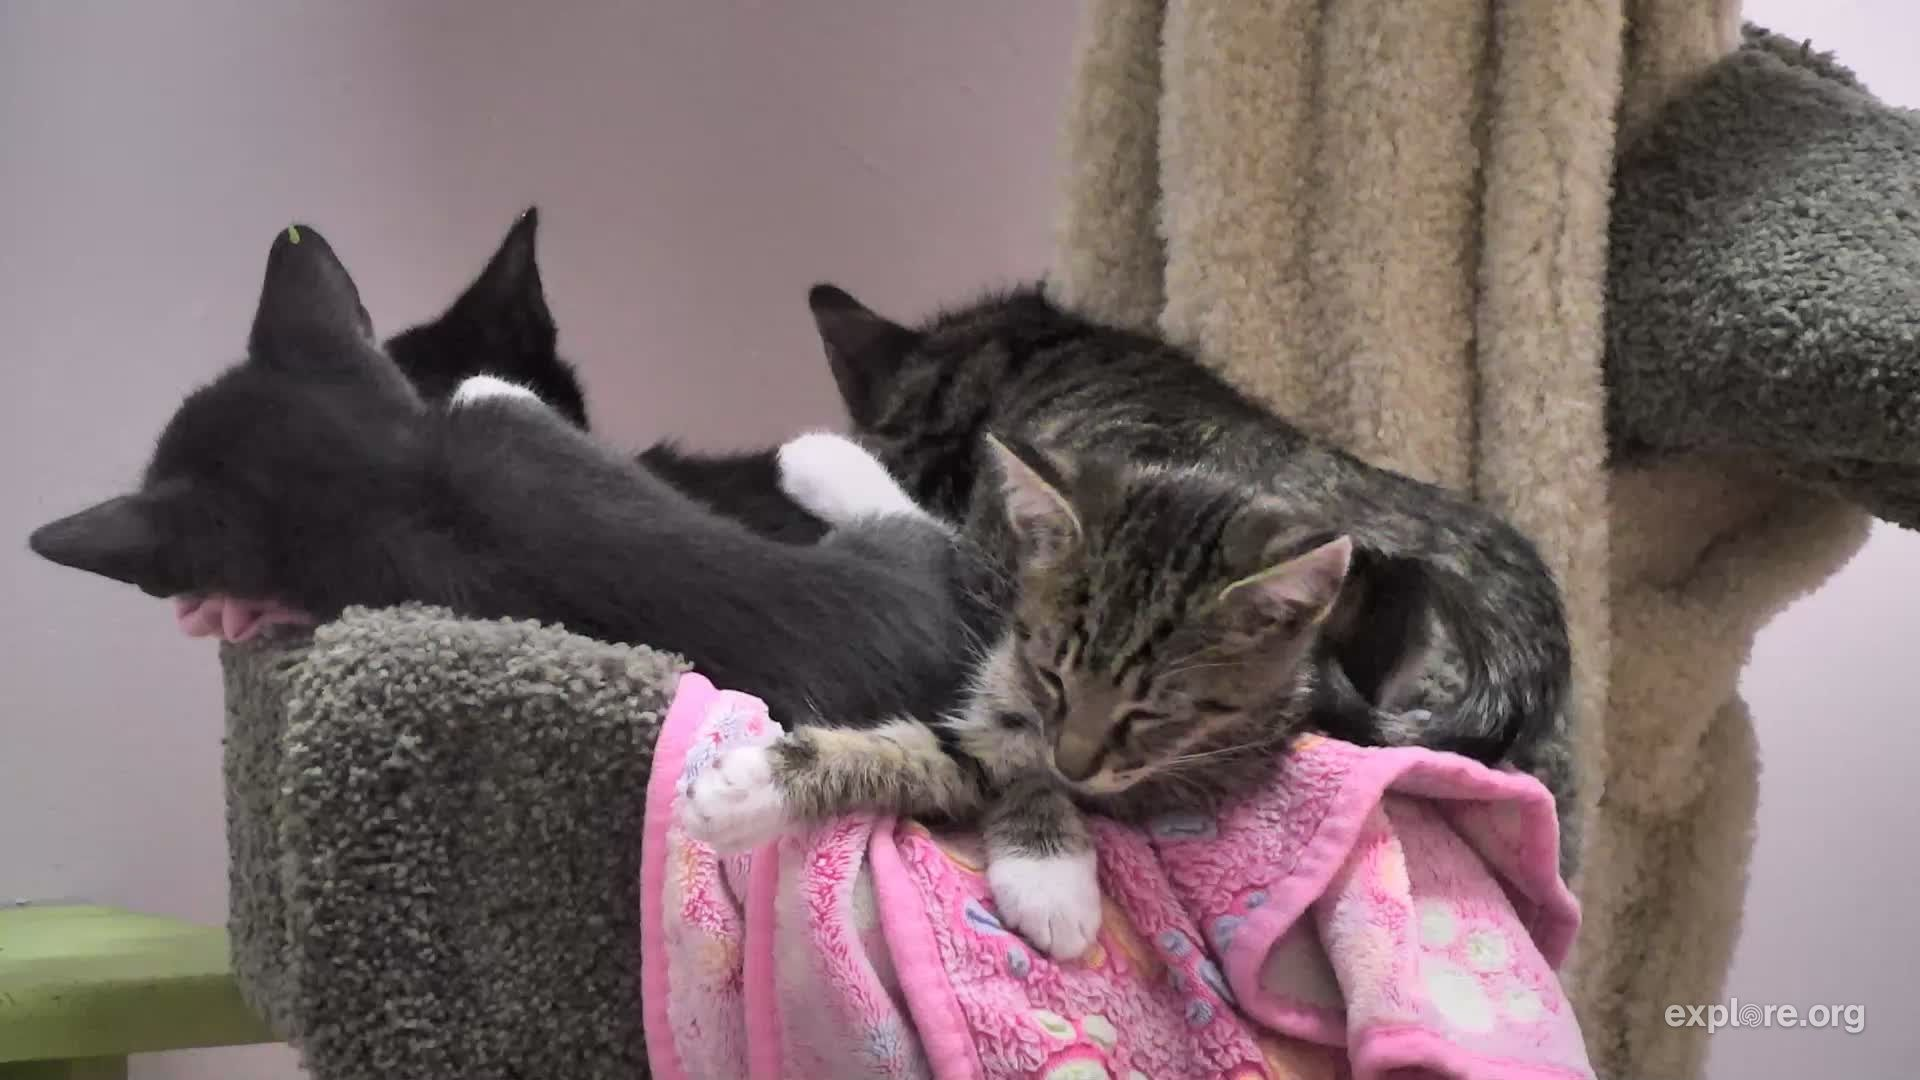 I M Watching The Kittenrescue Cam On Explore Org Streaming Live From Los Angeles Ca Snapshots Explore Los Angeles